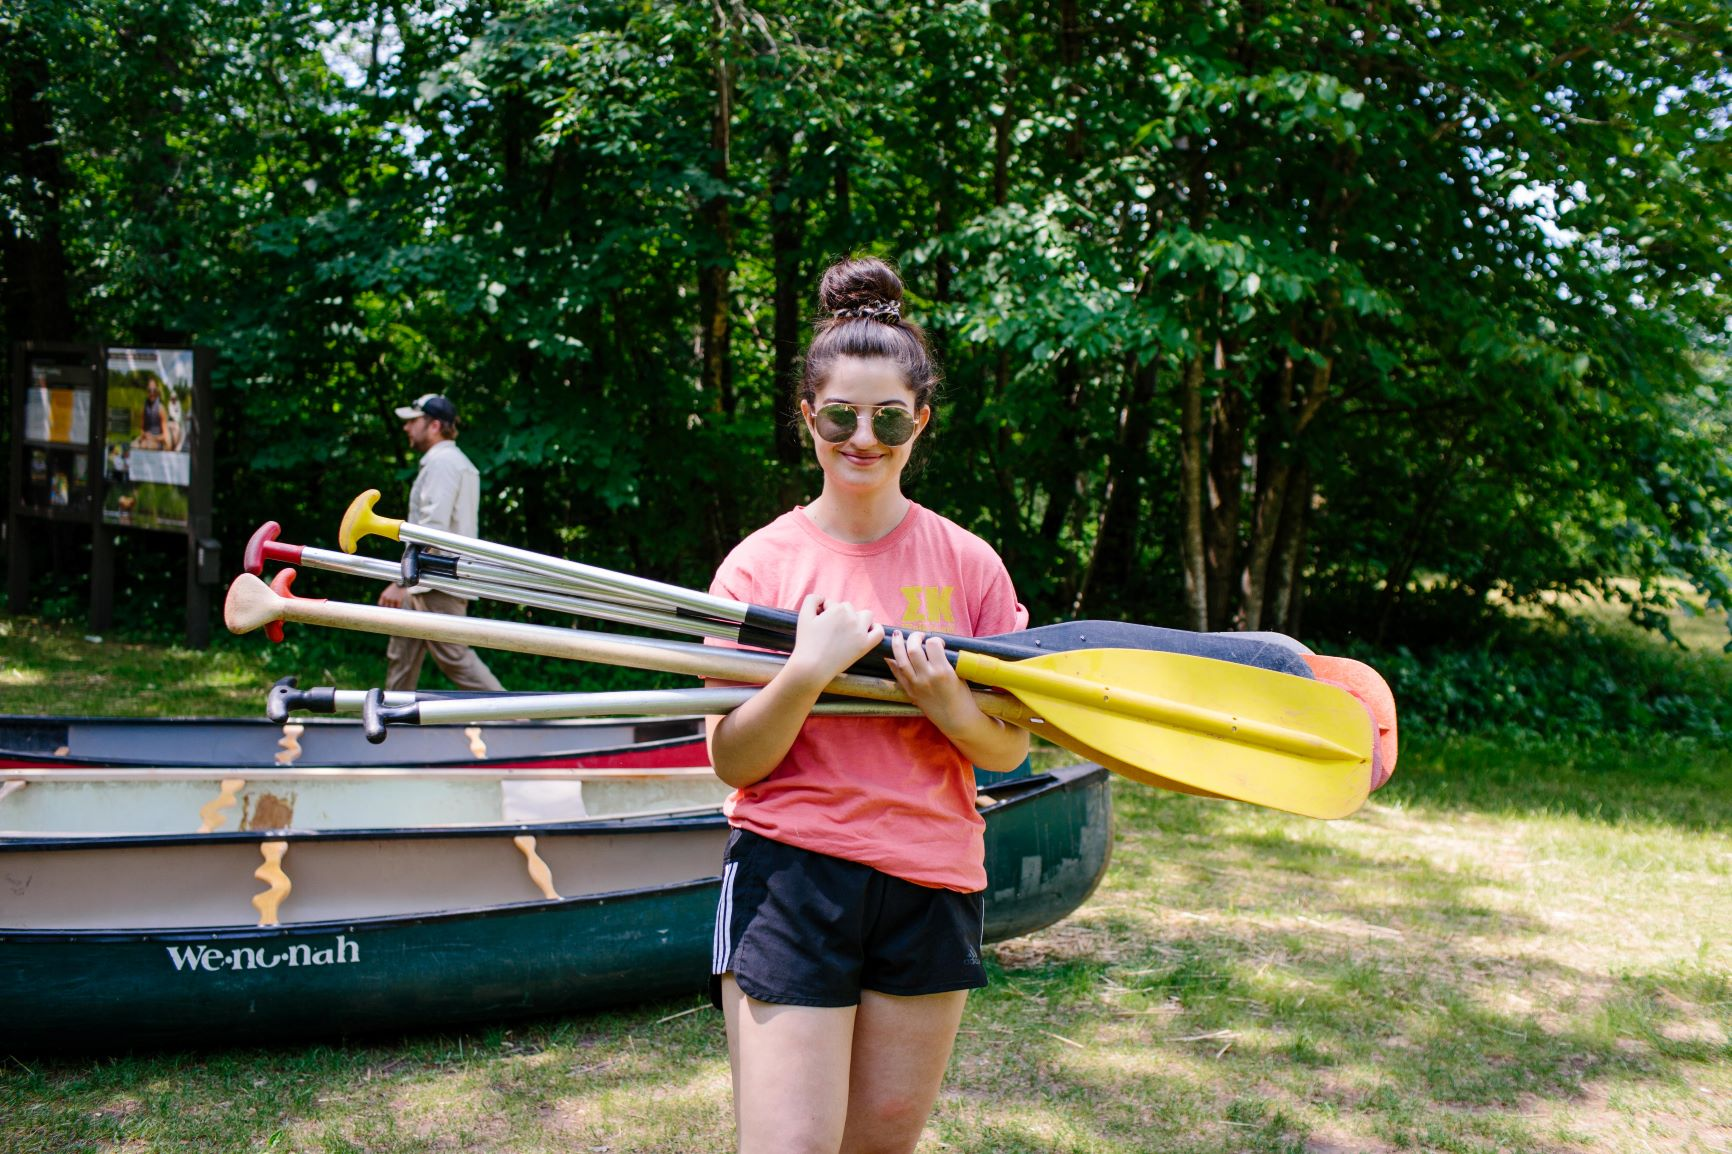 Preparing for a canoe adventure!